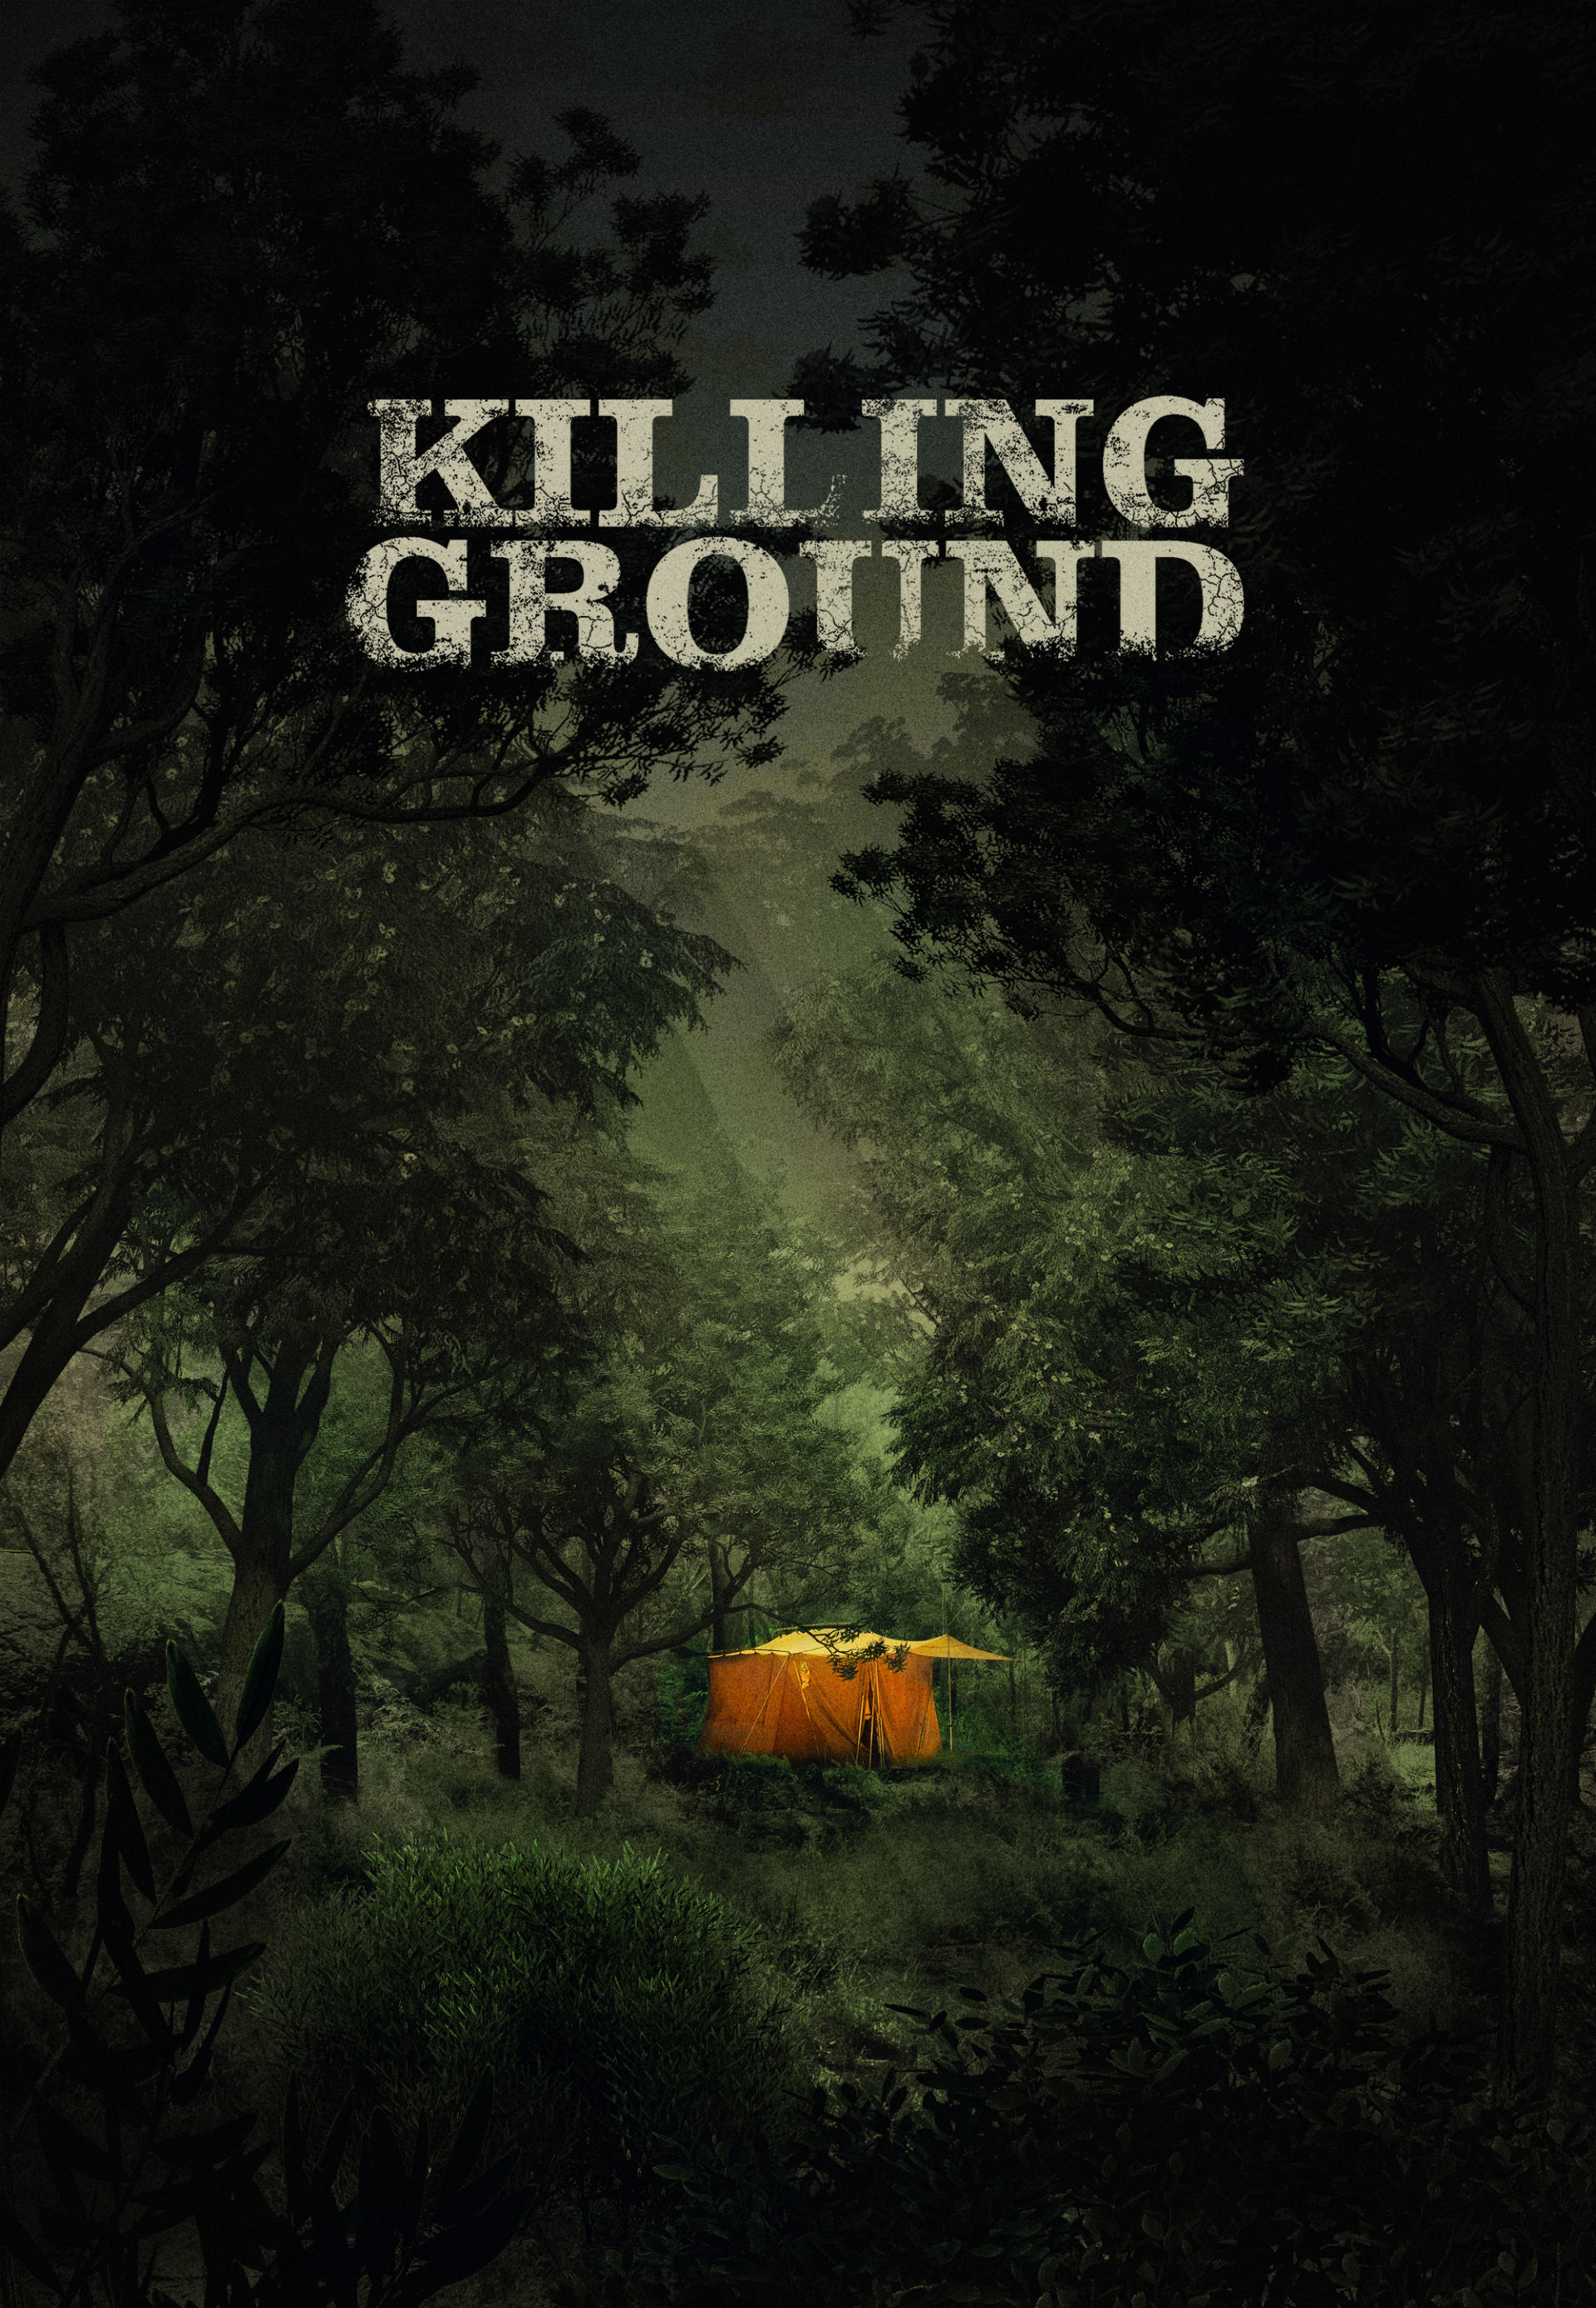 Killing Ground - skrekkfilm